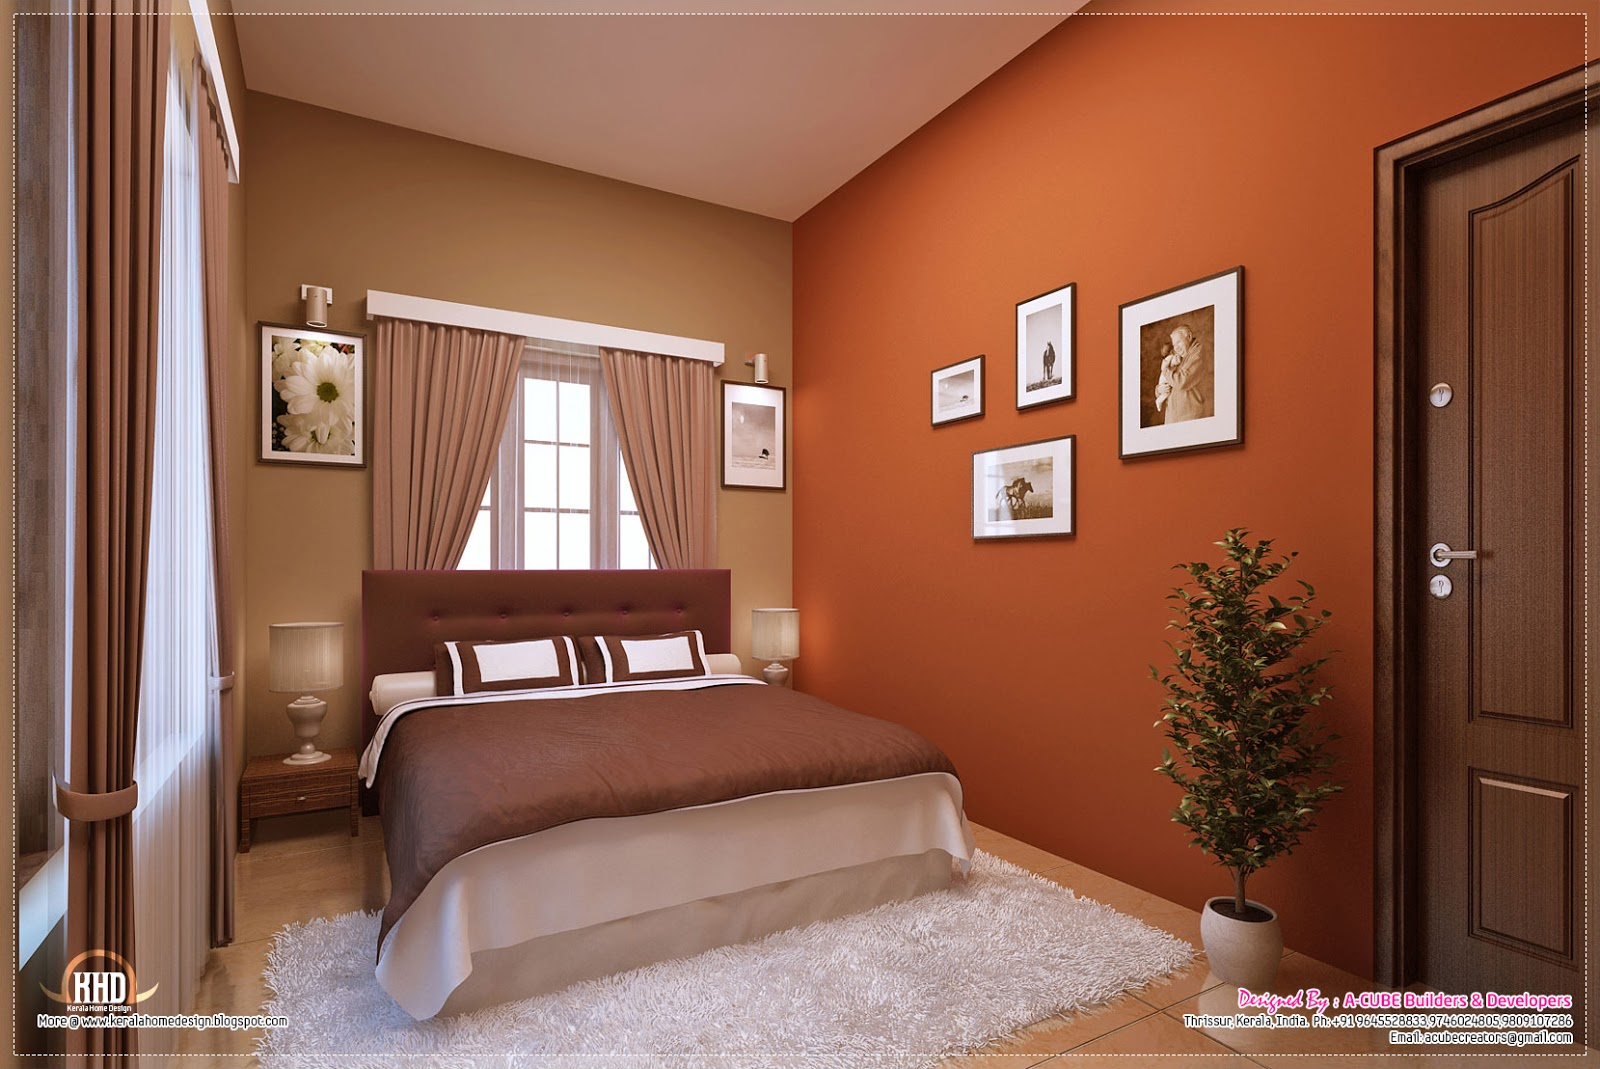 Indian Bedroom Photo Gallery Bedroom Style Ideas. Bedroom Interiors India   BedroomChampion com